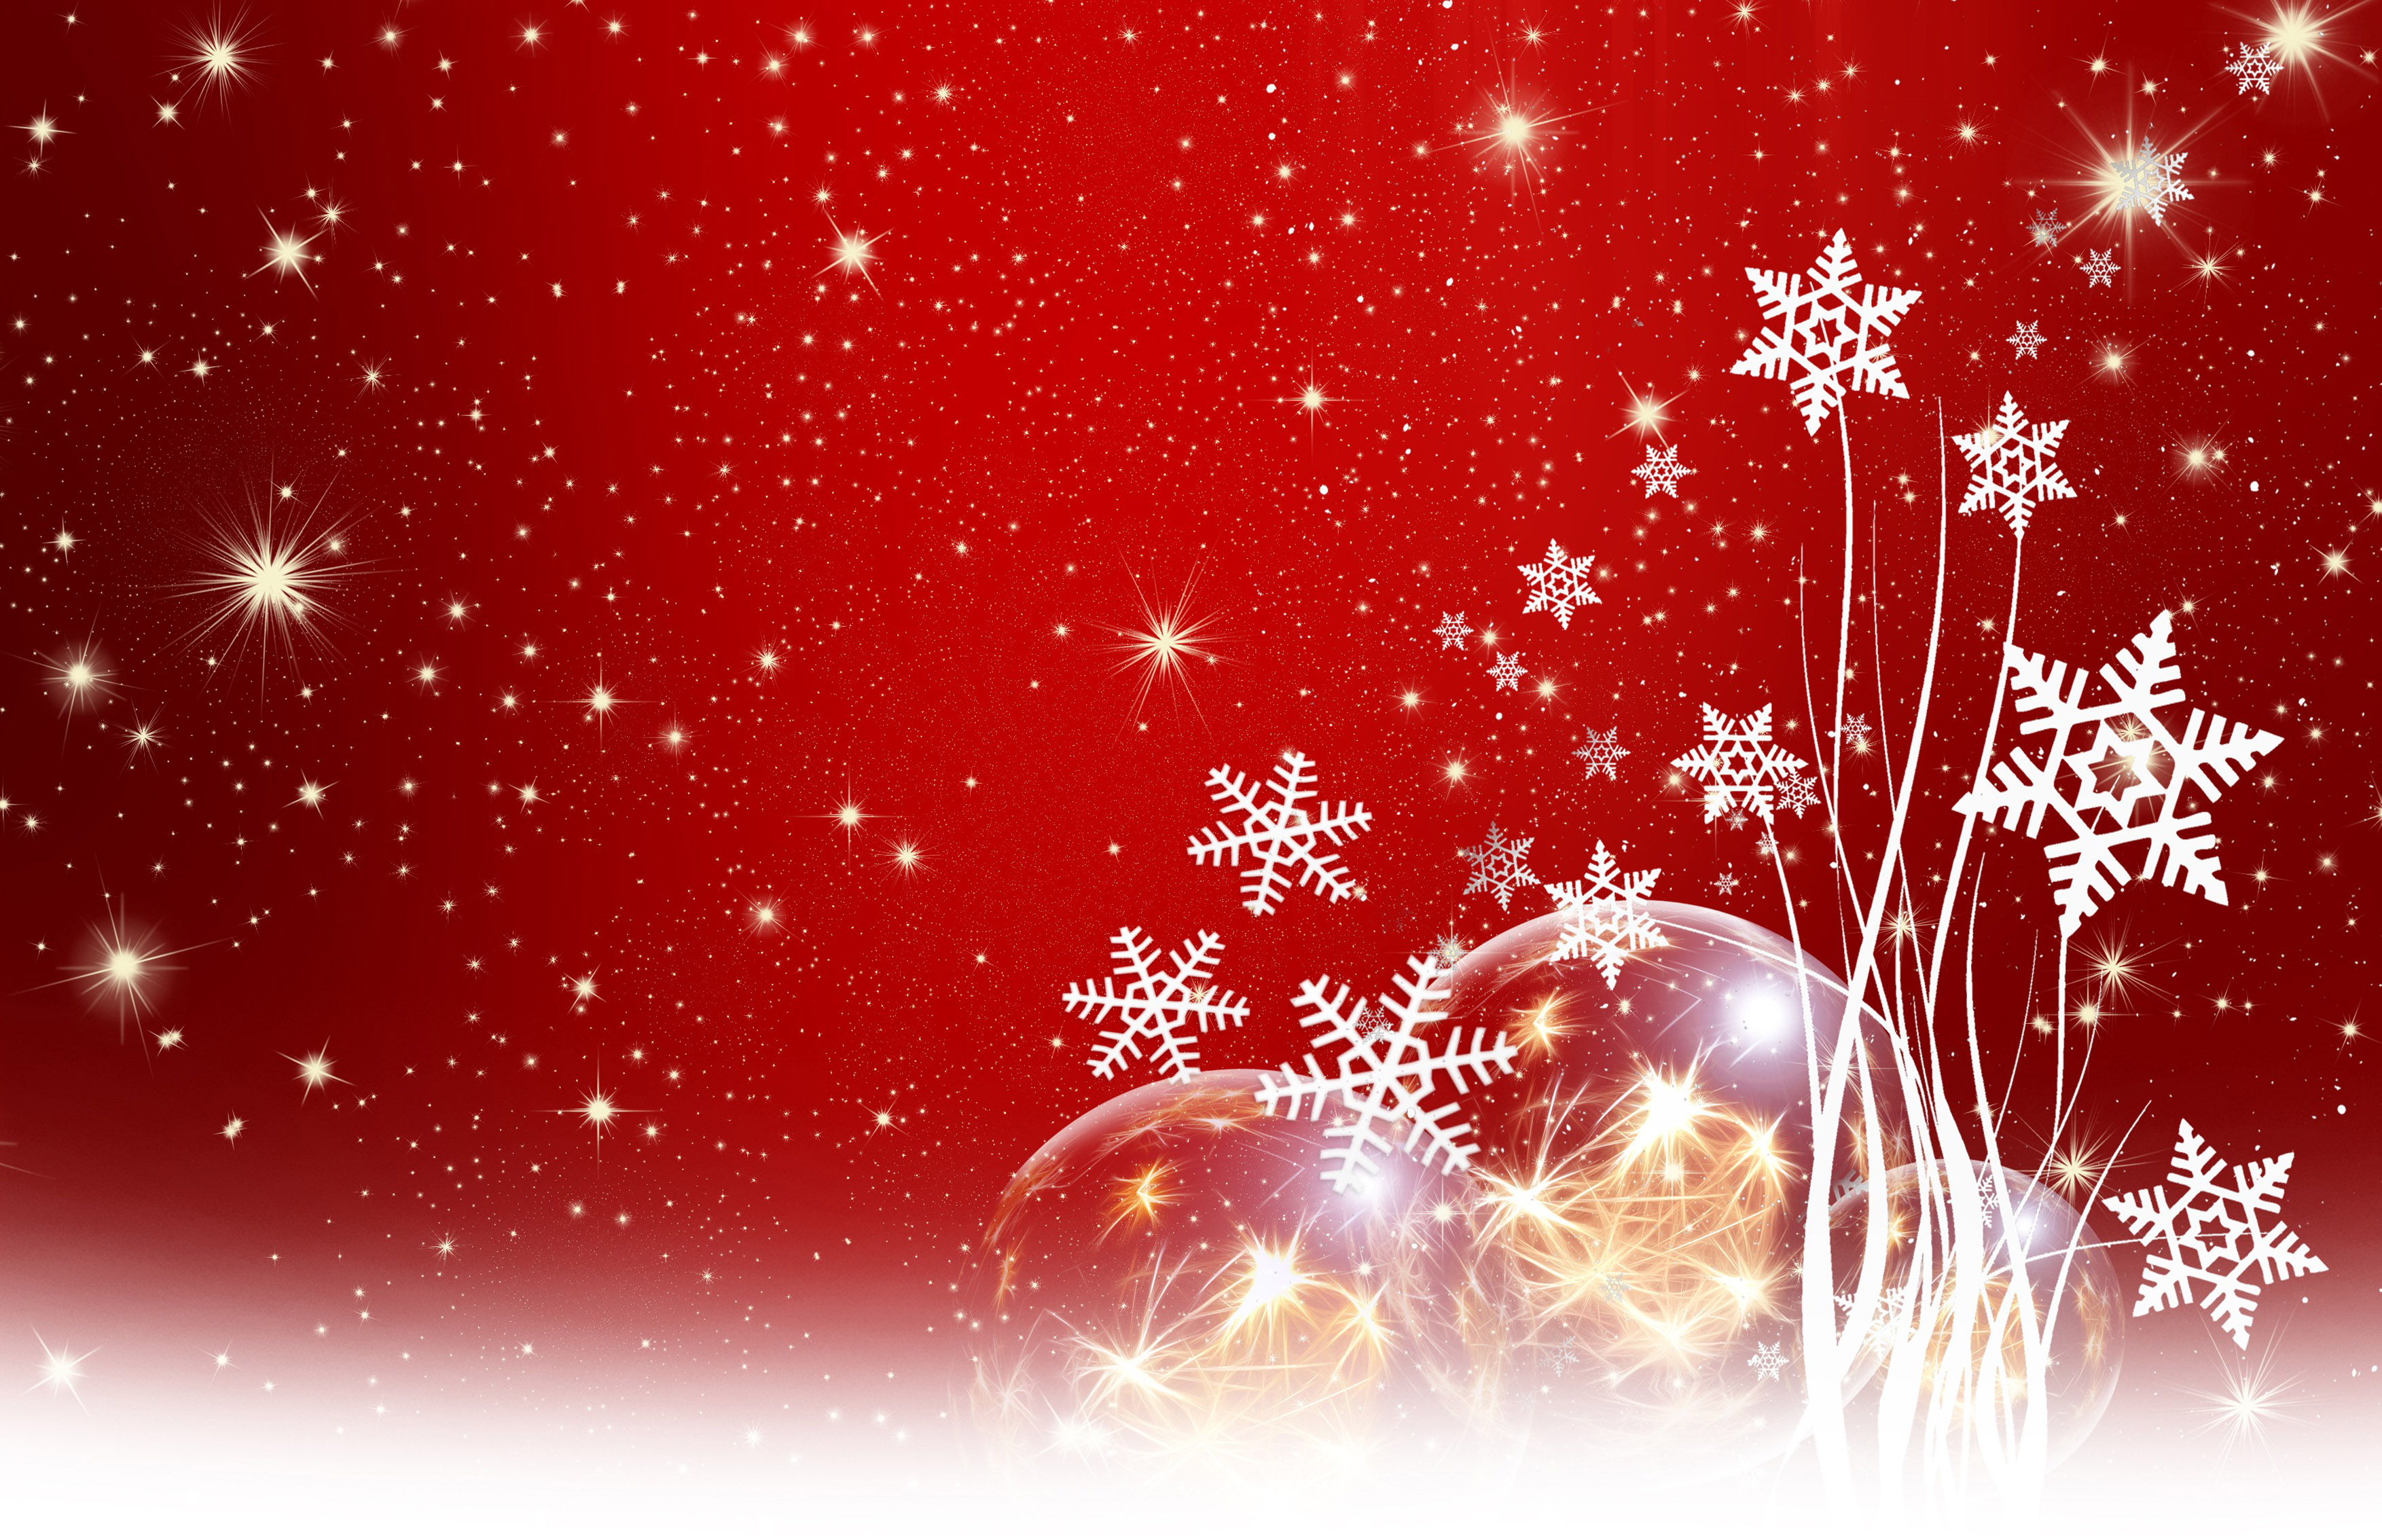 50 Great Pictures for Christmas Wallpaper Background 3507x2268